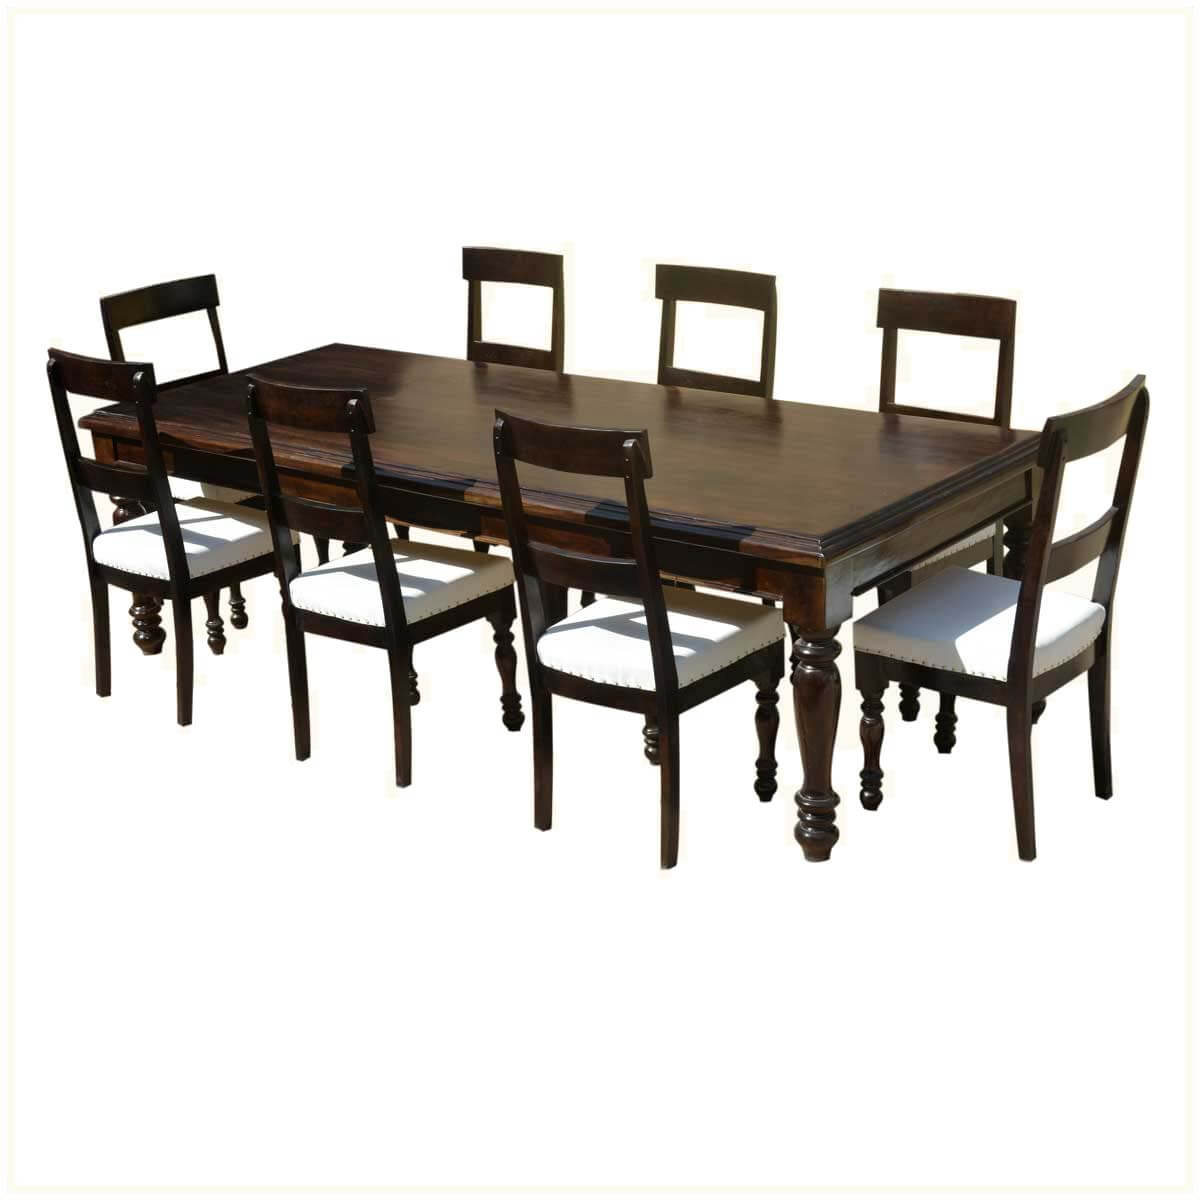 american acacia wood dining table leather upholstered chairs. Black Bedroom Furniture Sets. Home Design Ideas